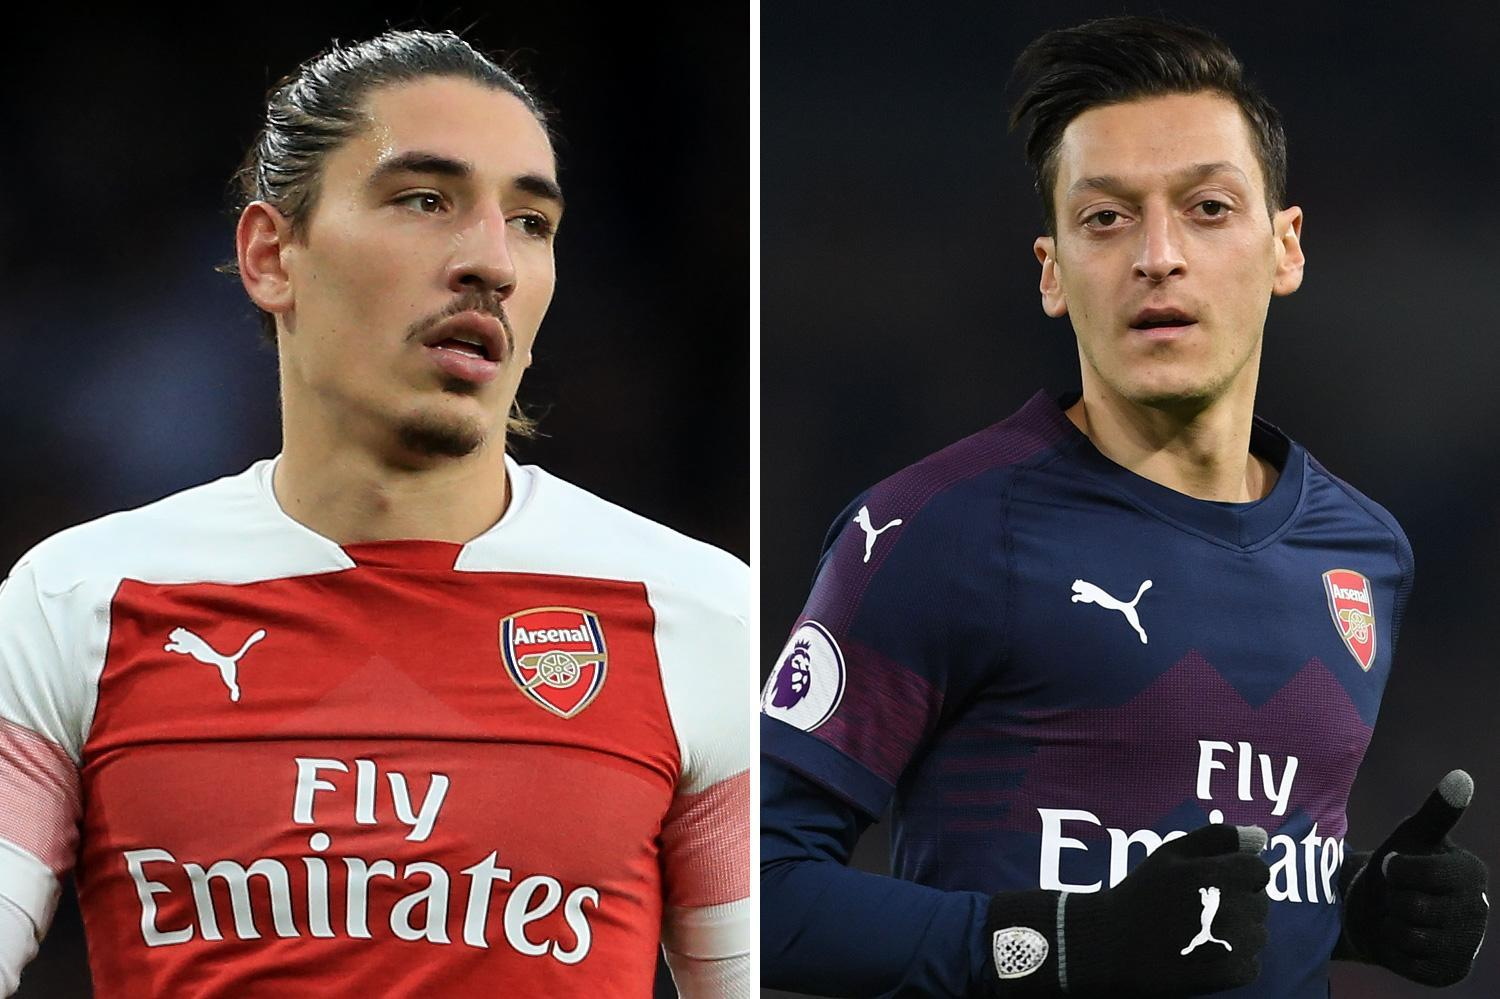 Arsenal injury boost as SIX first-team stars return to training ahead of West Ham including Mesut Ozil and Hector Bellerin